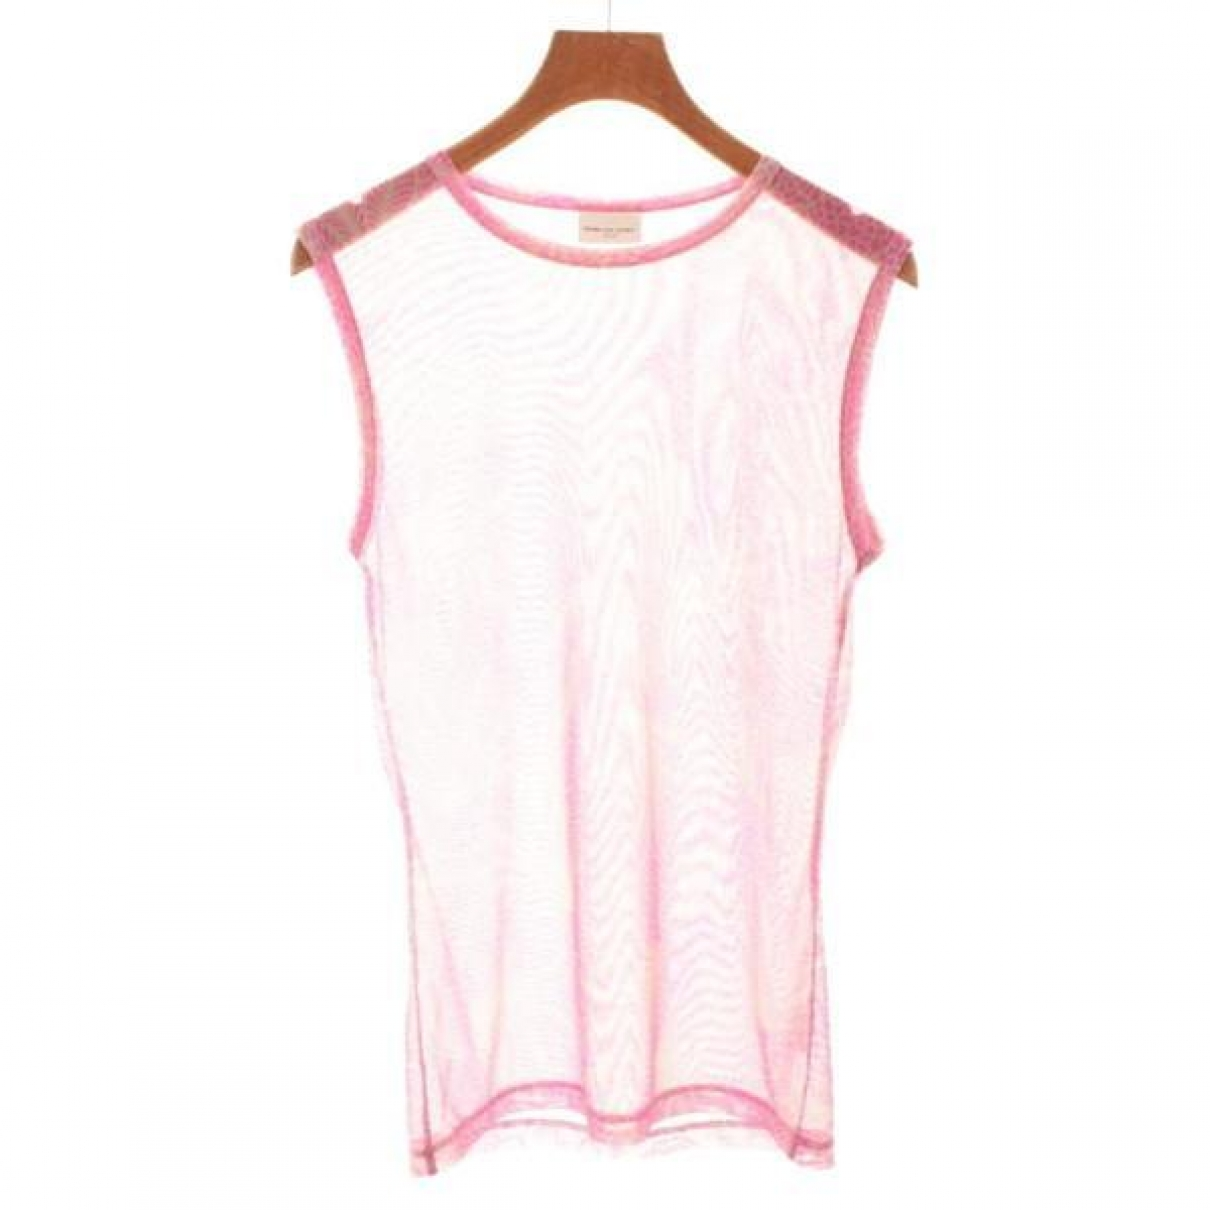 Dries Van Noten \N Top in  Rosa Polyester